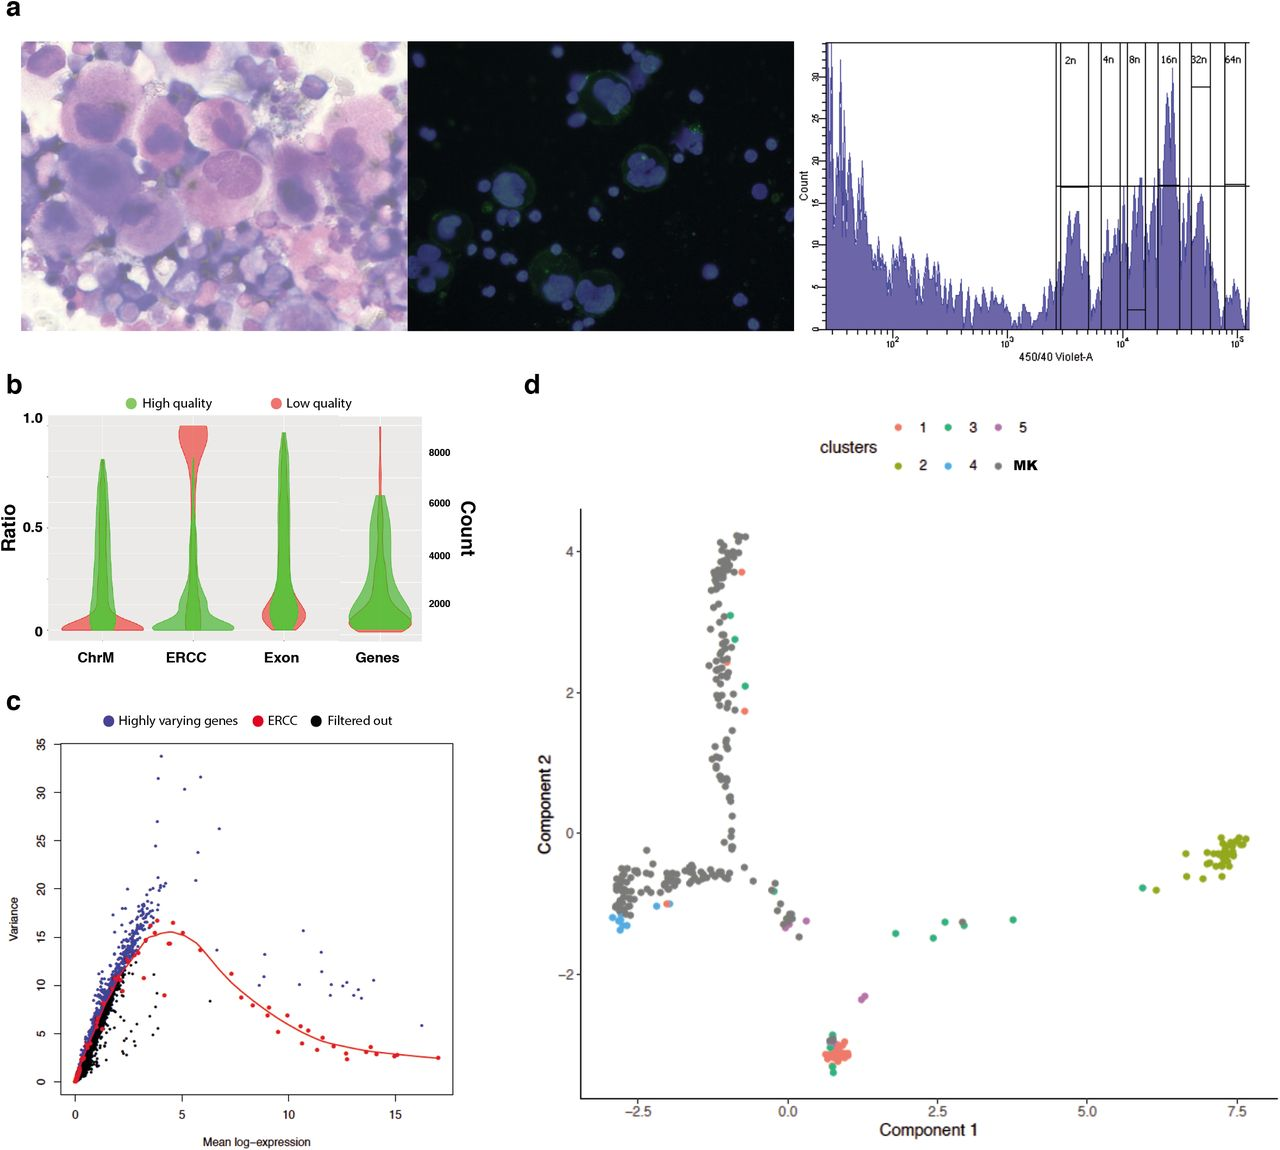 Single cell and low input <t>RNA</t> sequencing of bone marrow MKs a. Human bone marrow MK phenotype. Left panel: Cytocentrifugation of enriched MK population stained with Roberts stain, 40x objective; Middle panel: Immunofluorescent staining of enriched megakaryocyte population with DAPI DNA stain (blue) and CD41 surface stain (green); Right panel: Fluorescence activated cell sorting for primary megakaryocytes from whole human bone marrow. Ploidy plot shown detecting levels of Hoechst 33342 staining showing typical ploidy distribution for human bone marrow MKs (cells shown are CD41a+, CD42a+); b. Single MK cell filtering. Performed using a 5-round training scheme of random forest models 37 trained cDNA from 20 cell MK pools that were isolated using an identical sorting and sequencing protocol. High and low quality cells shown by mitochondrial mapping (ChrM), <t>ERCC</t> ratio (ERCC), exonic ratio (Exon), number of called genes (Genes). Green denotes high quality, red denotes low quality. Out of 1106 cells, 282 were taken forward for further analysis based on high quality; c. Gene filtering. Variance of normalized log-expression values for each gene in the HSC dataset, plotted against the mean log-expression. Variance estimates for ERCC spike-in transcripts and curve fit are highlighted in red. Blue dots represent highly varying genes (n=2000); d. Ordering differentiation trajectories between HSC cell clusters using Monocle 2 with the addition of the MK 20-100 cell pools. HSC clusters and MKs are differentiated by color.